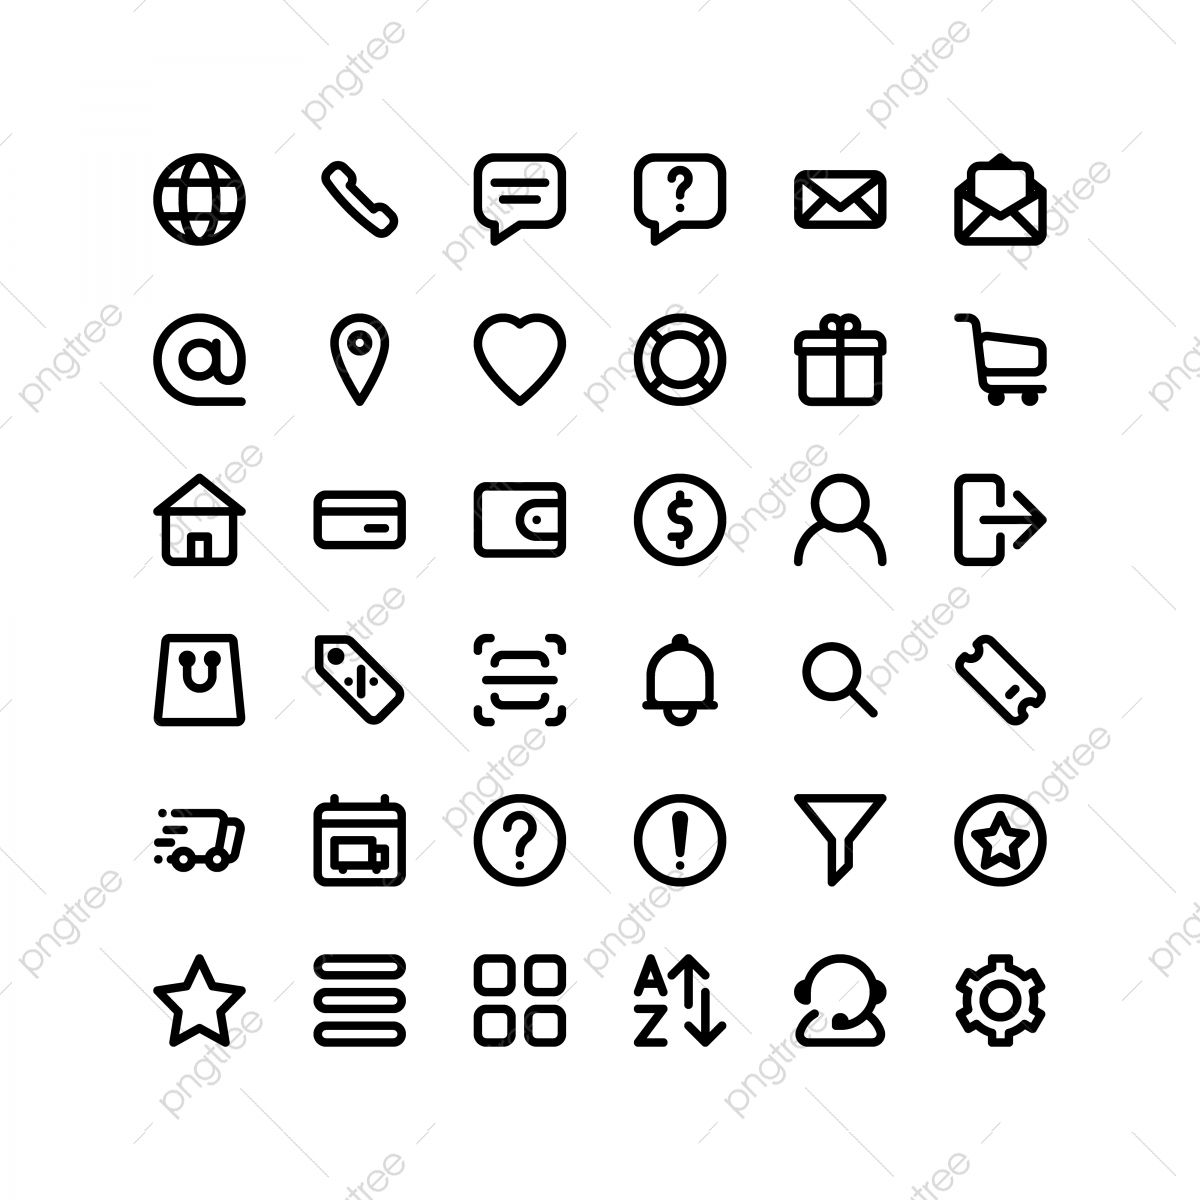 Set Of Ecommerce Icons 36 Icons For Web And App Web Icons Icons App Icons Png And Vector With Transparent Background For Free Download Buy Icon App Icon Mobile Icon